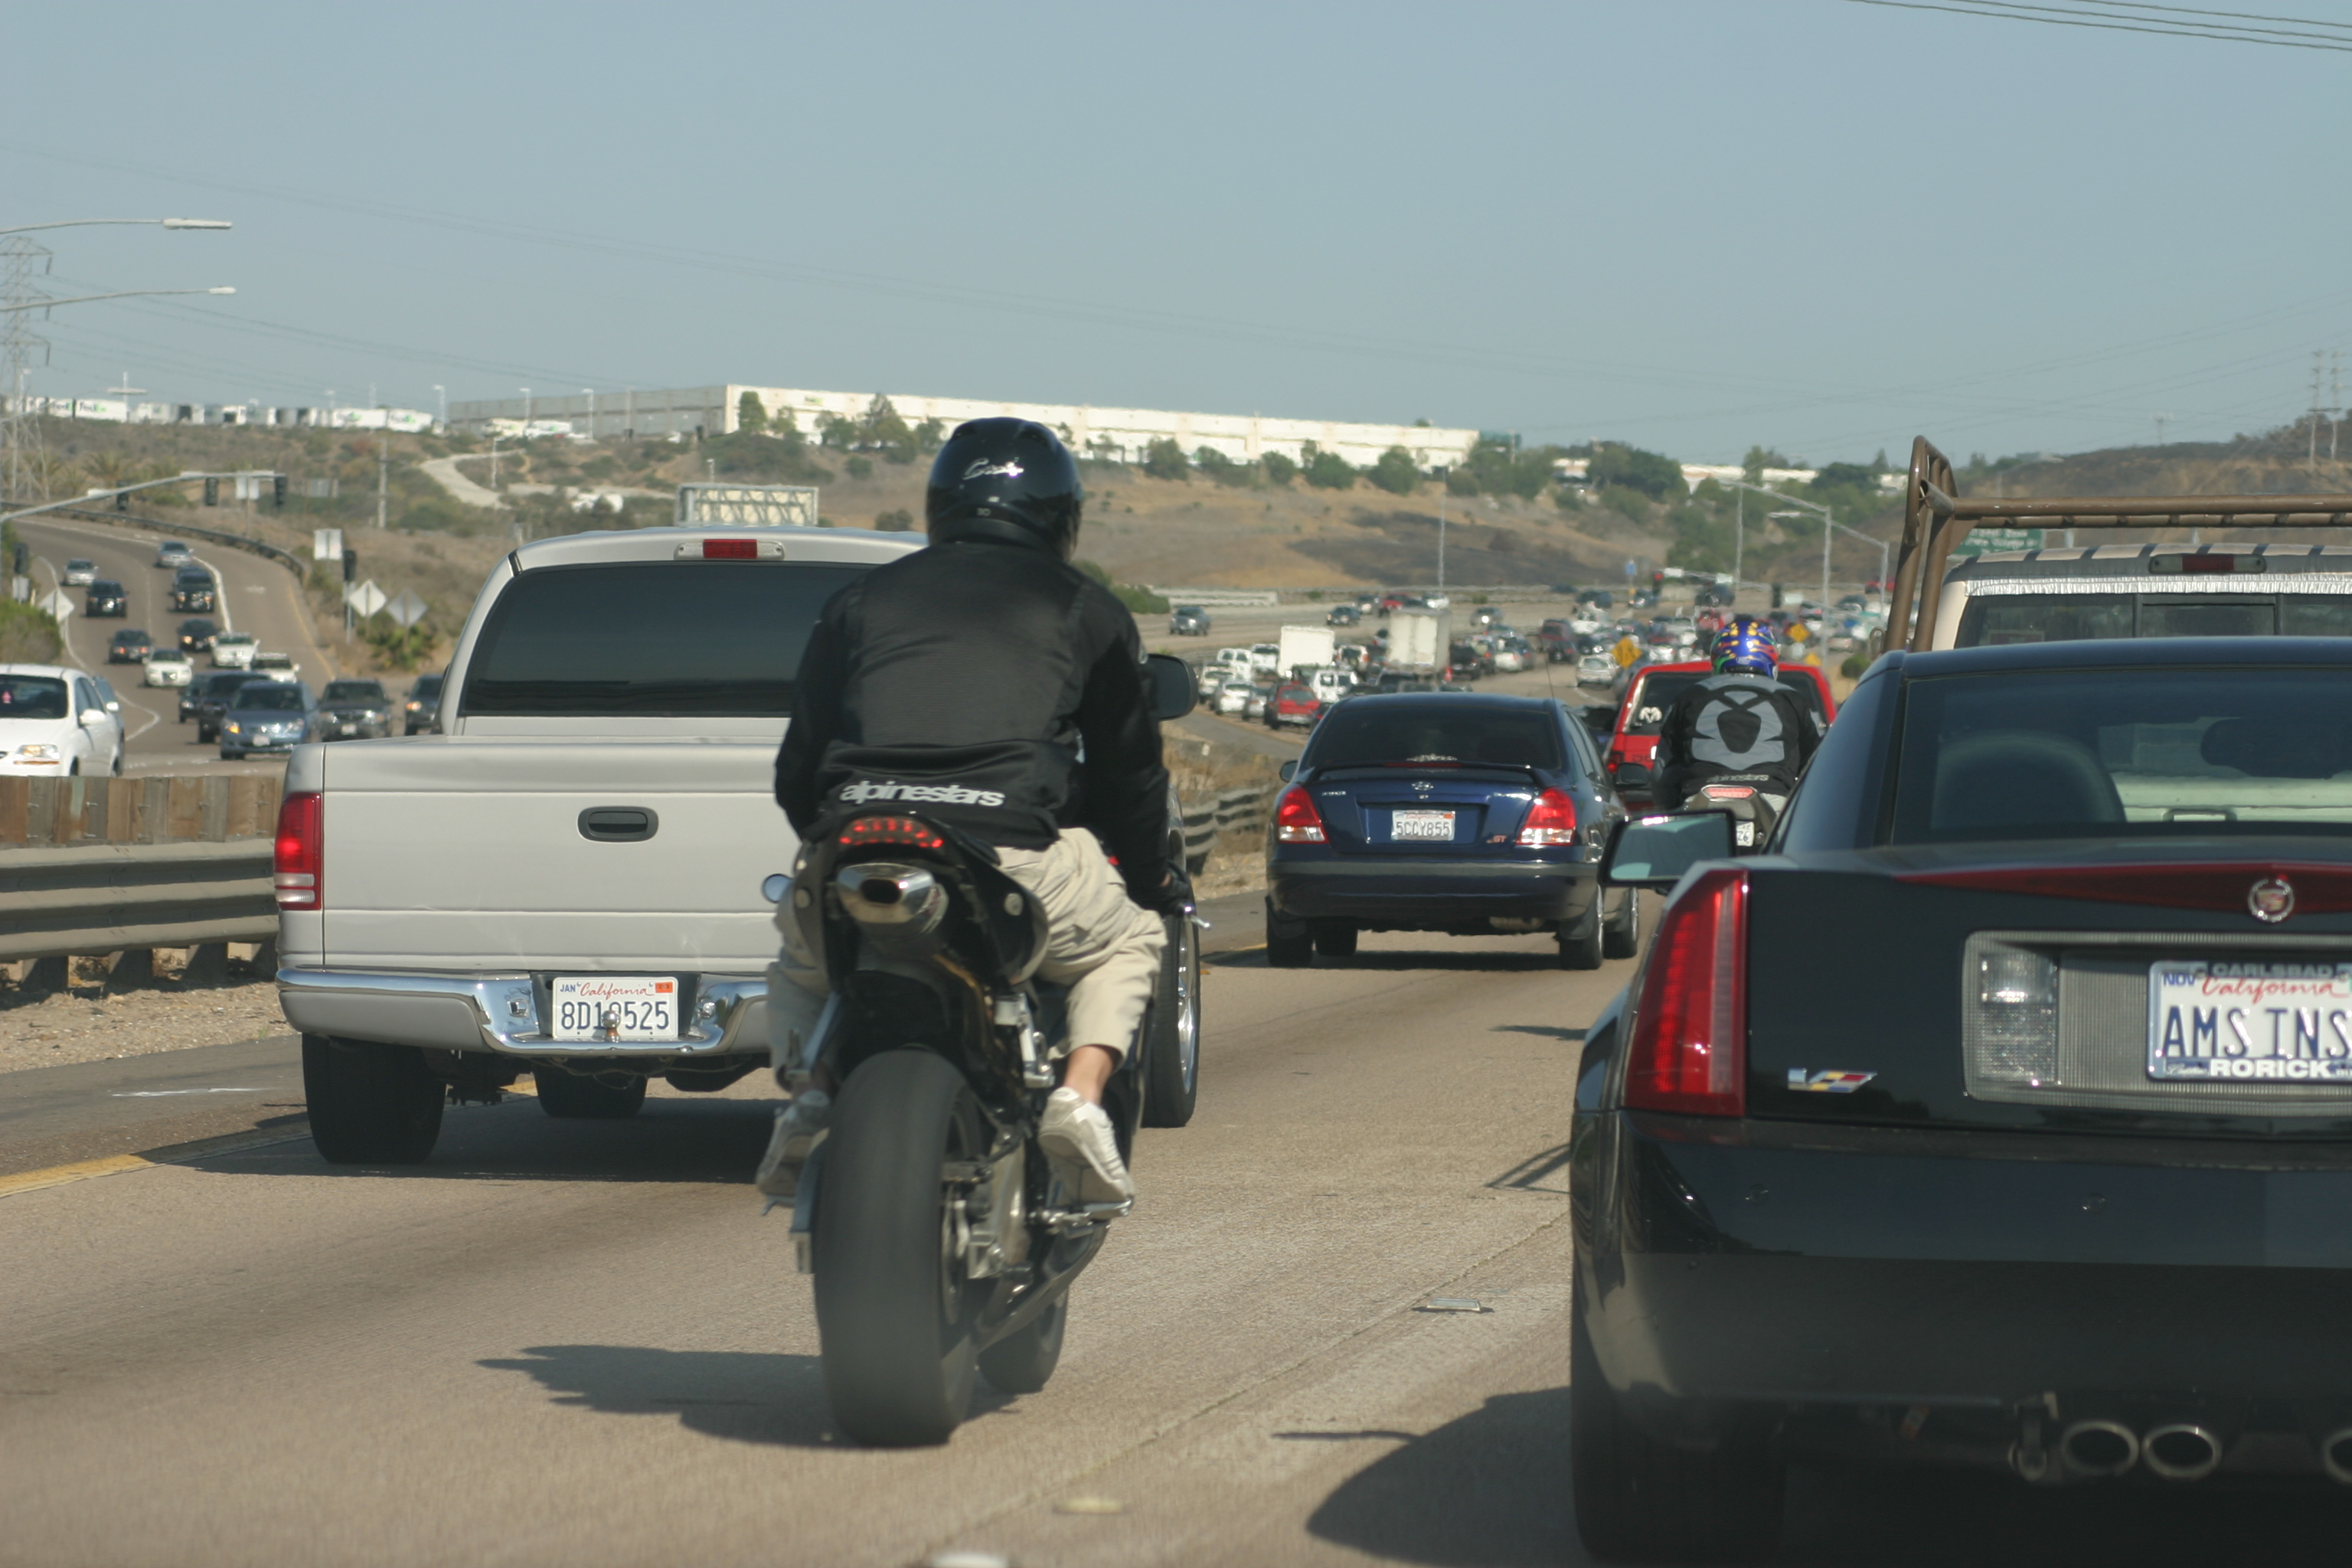 Dos motociclistas haciendo lane splitting en California, foto de Wikipedia